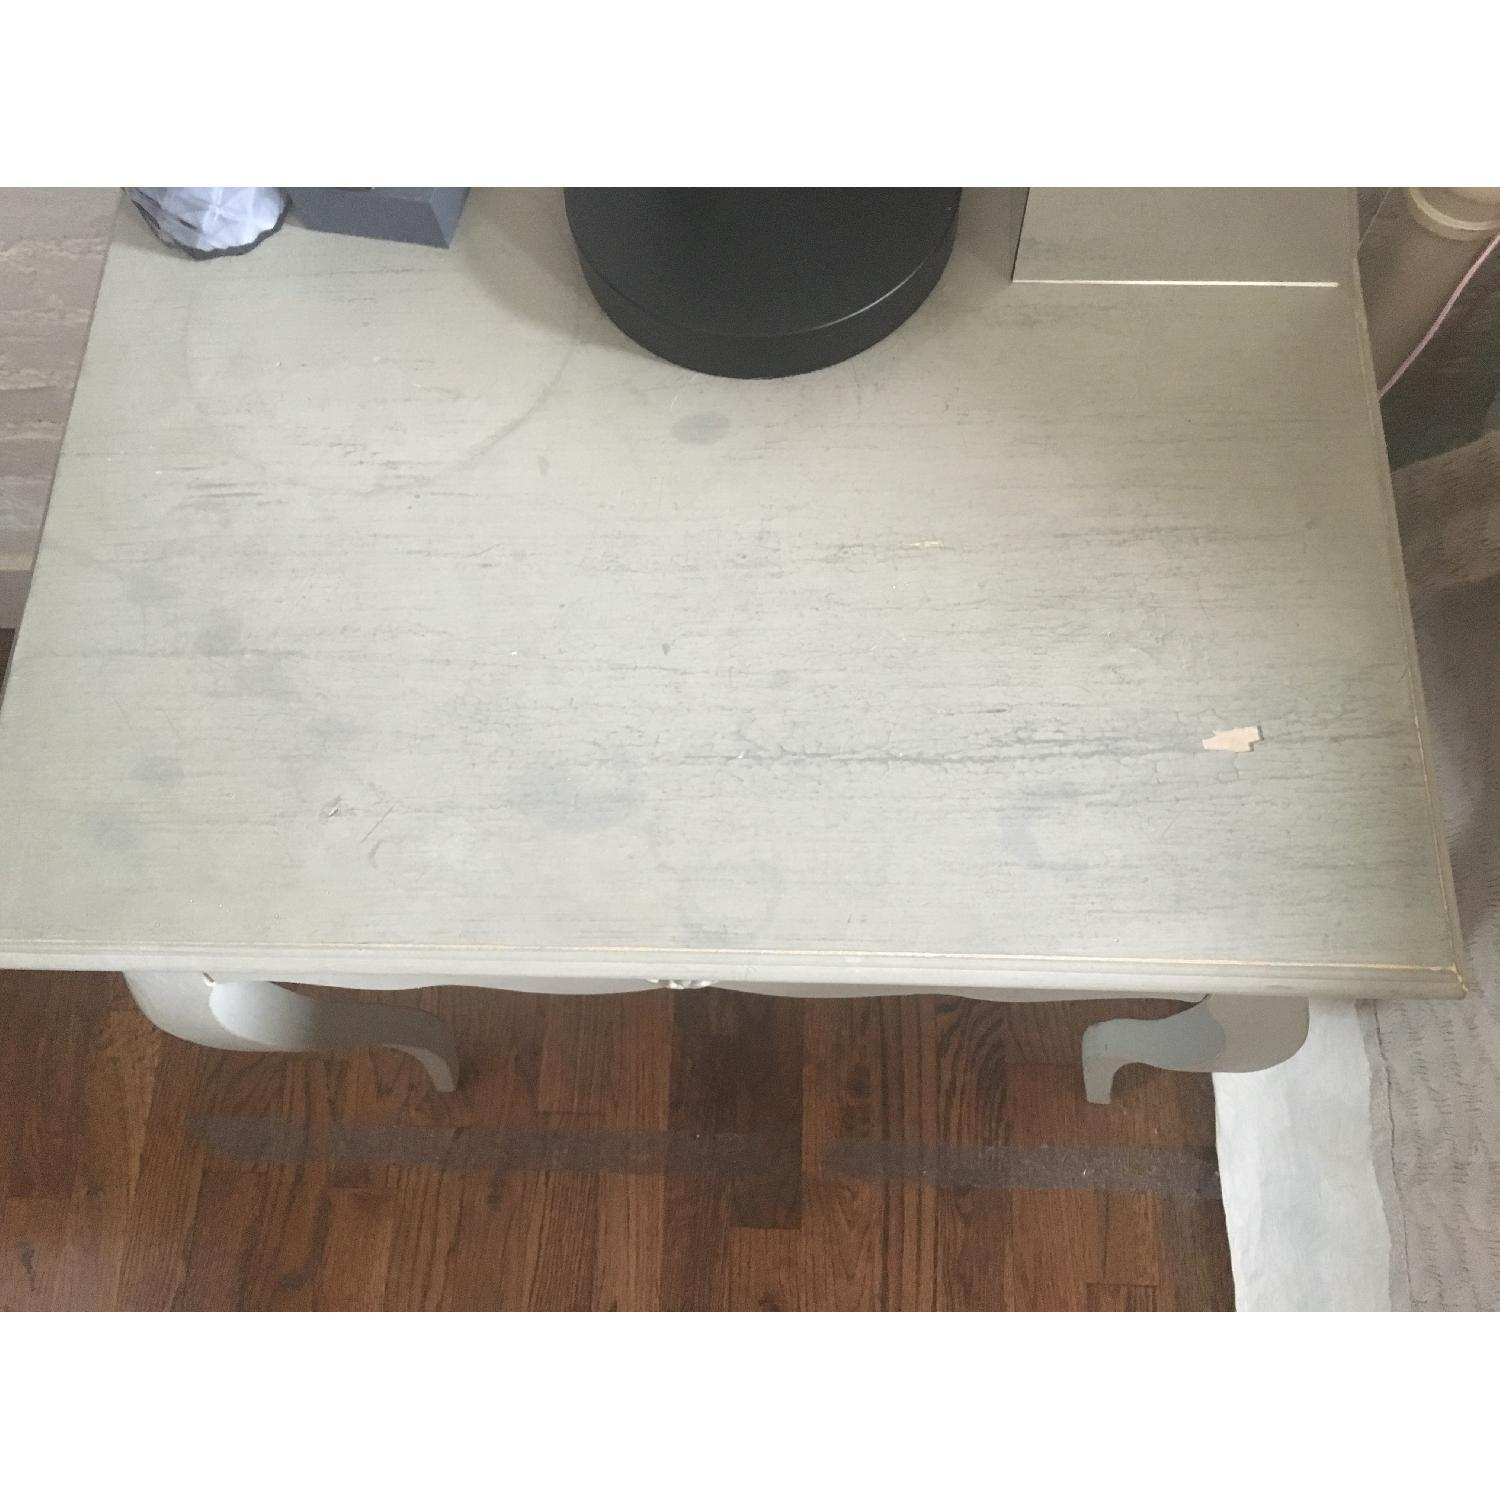 ABC Carpet & Home Urbn Side Table - image-3